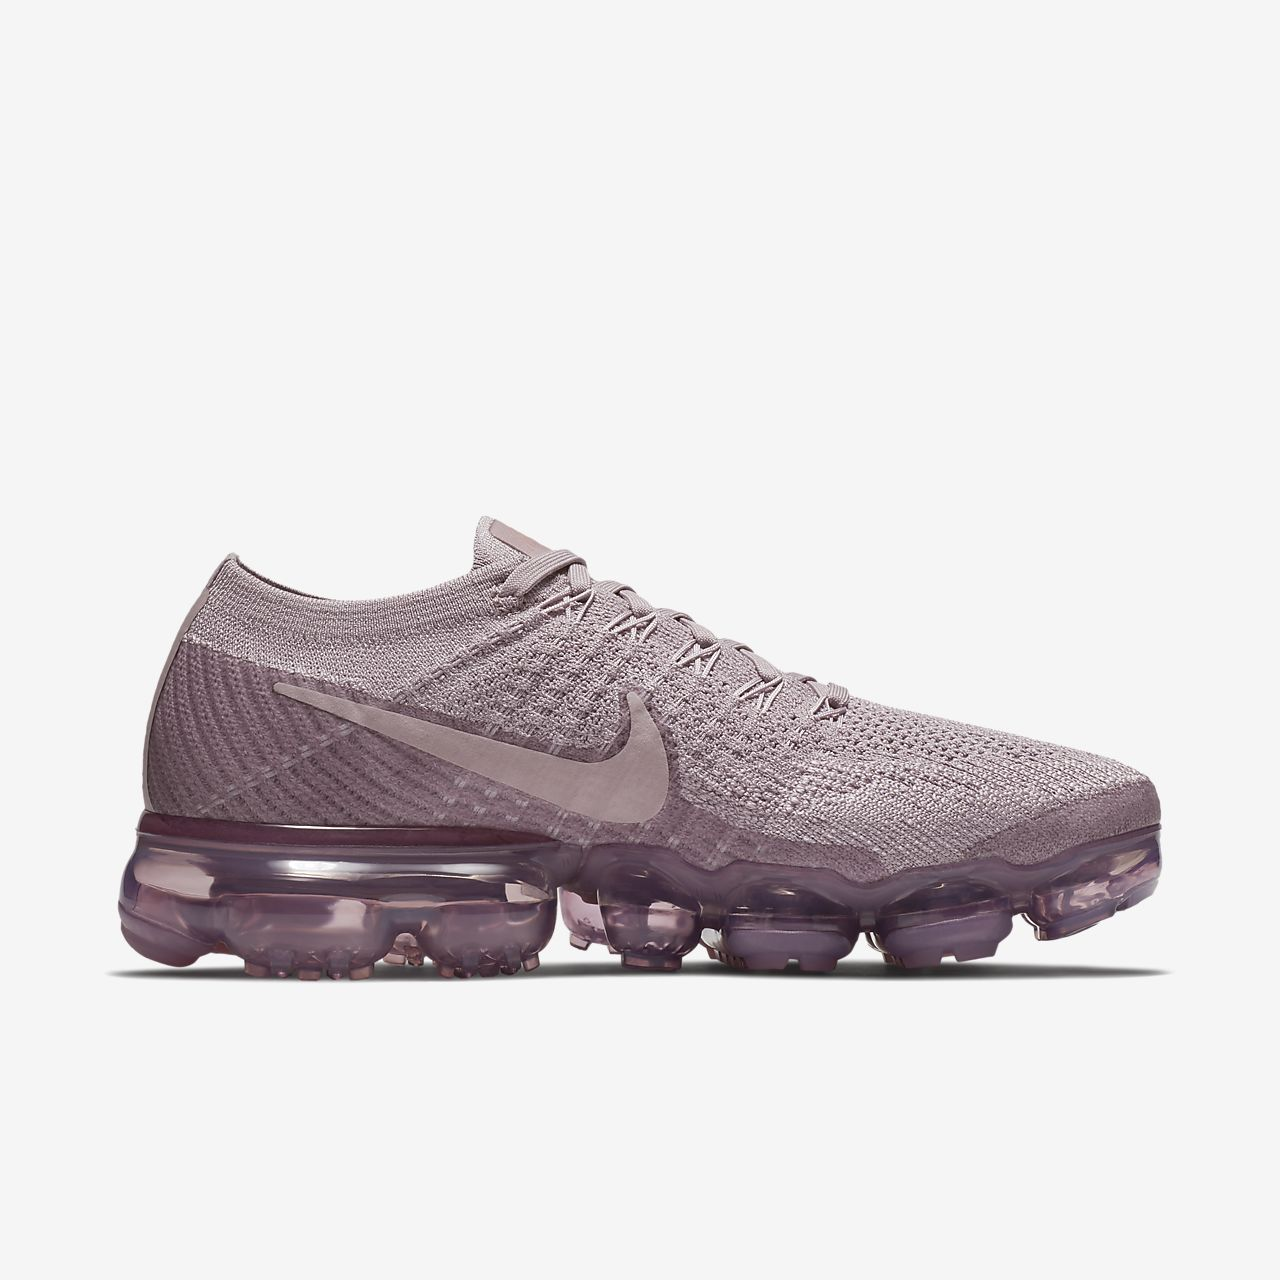 24c4ccb918 Nike Air VaporMax Flyknit Women's Shoe. Nike.com IN